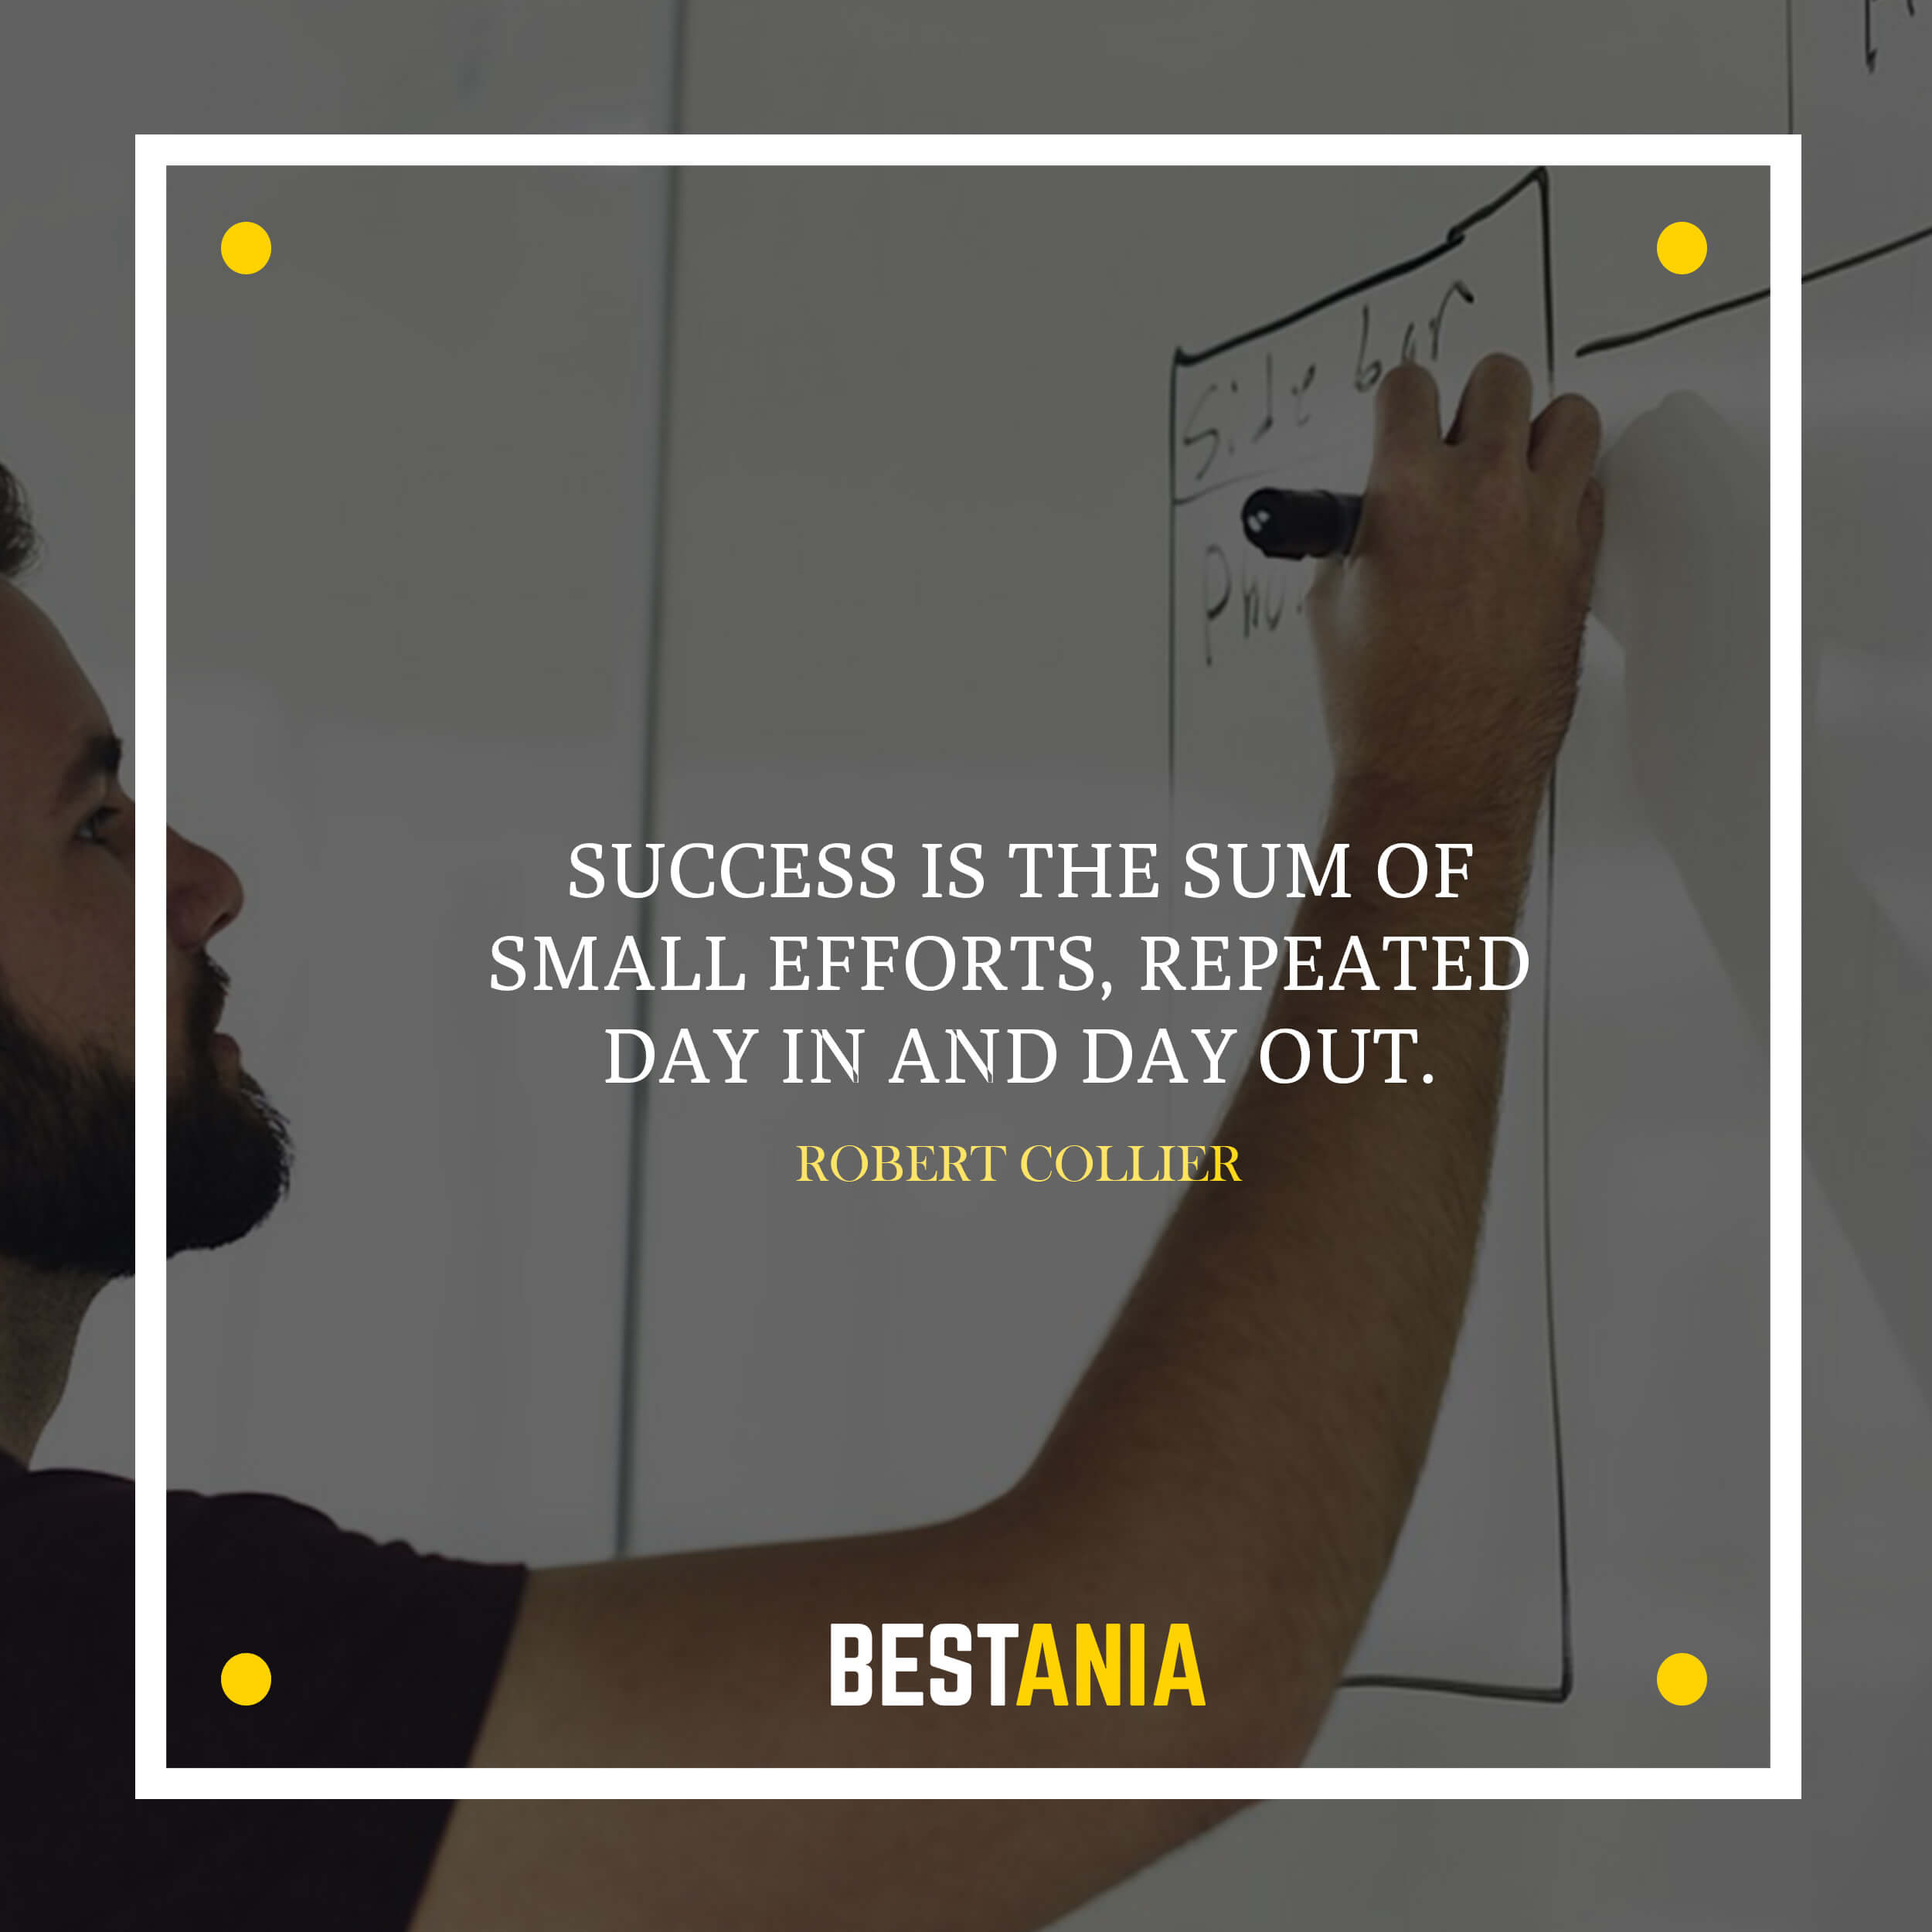 Success is the sum of small efforts, repeated day in and day out.– Robert Collier